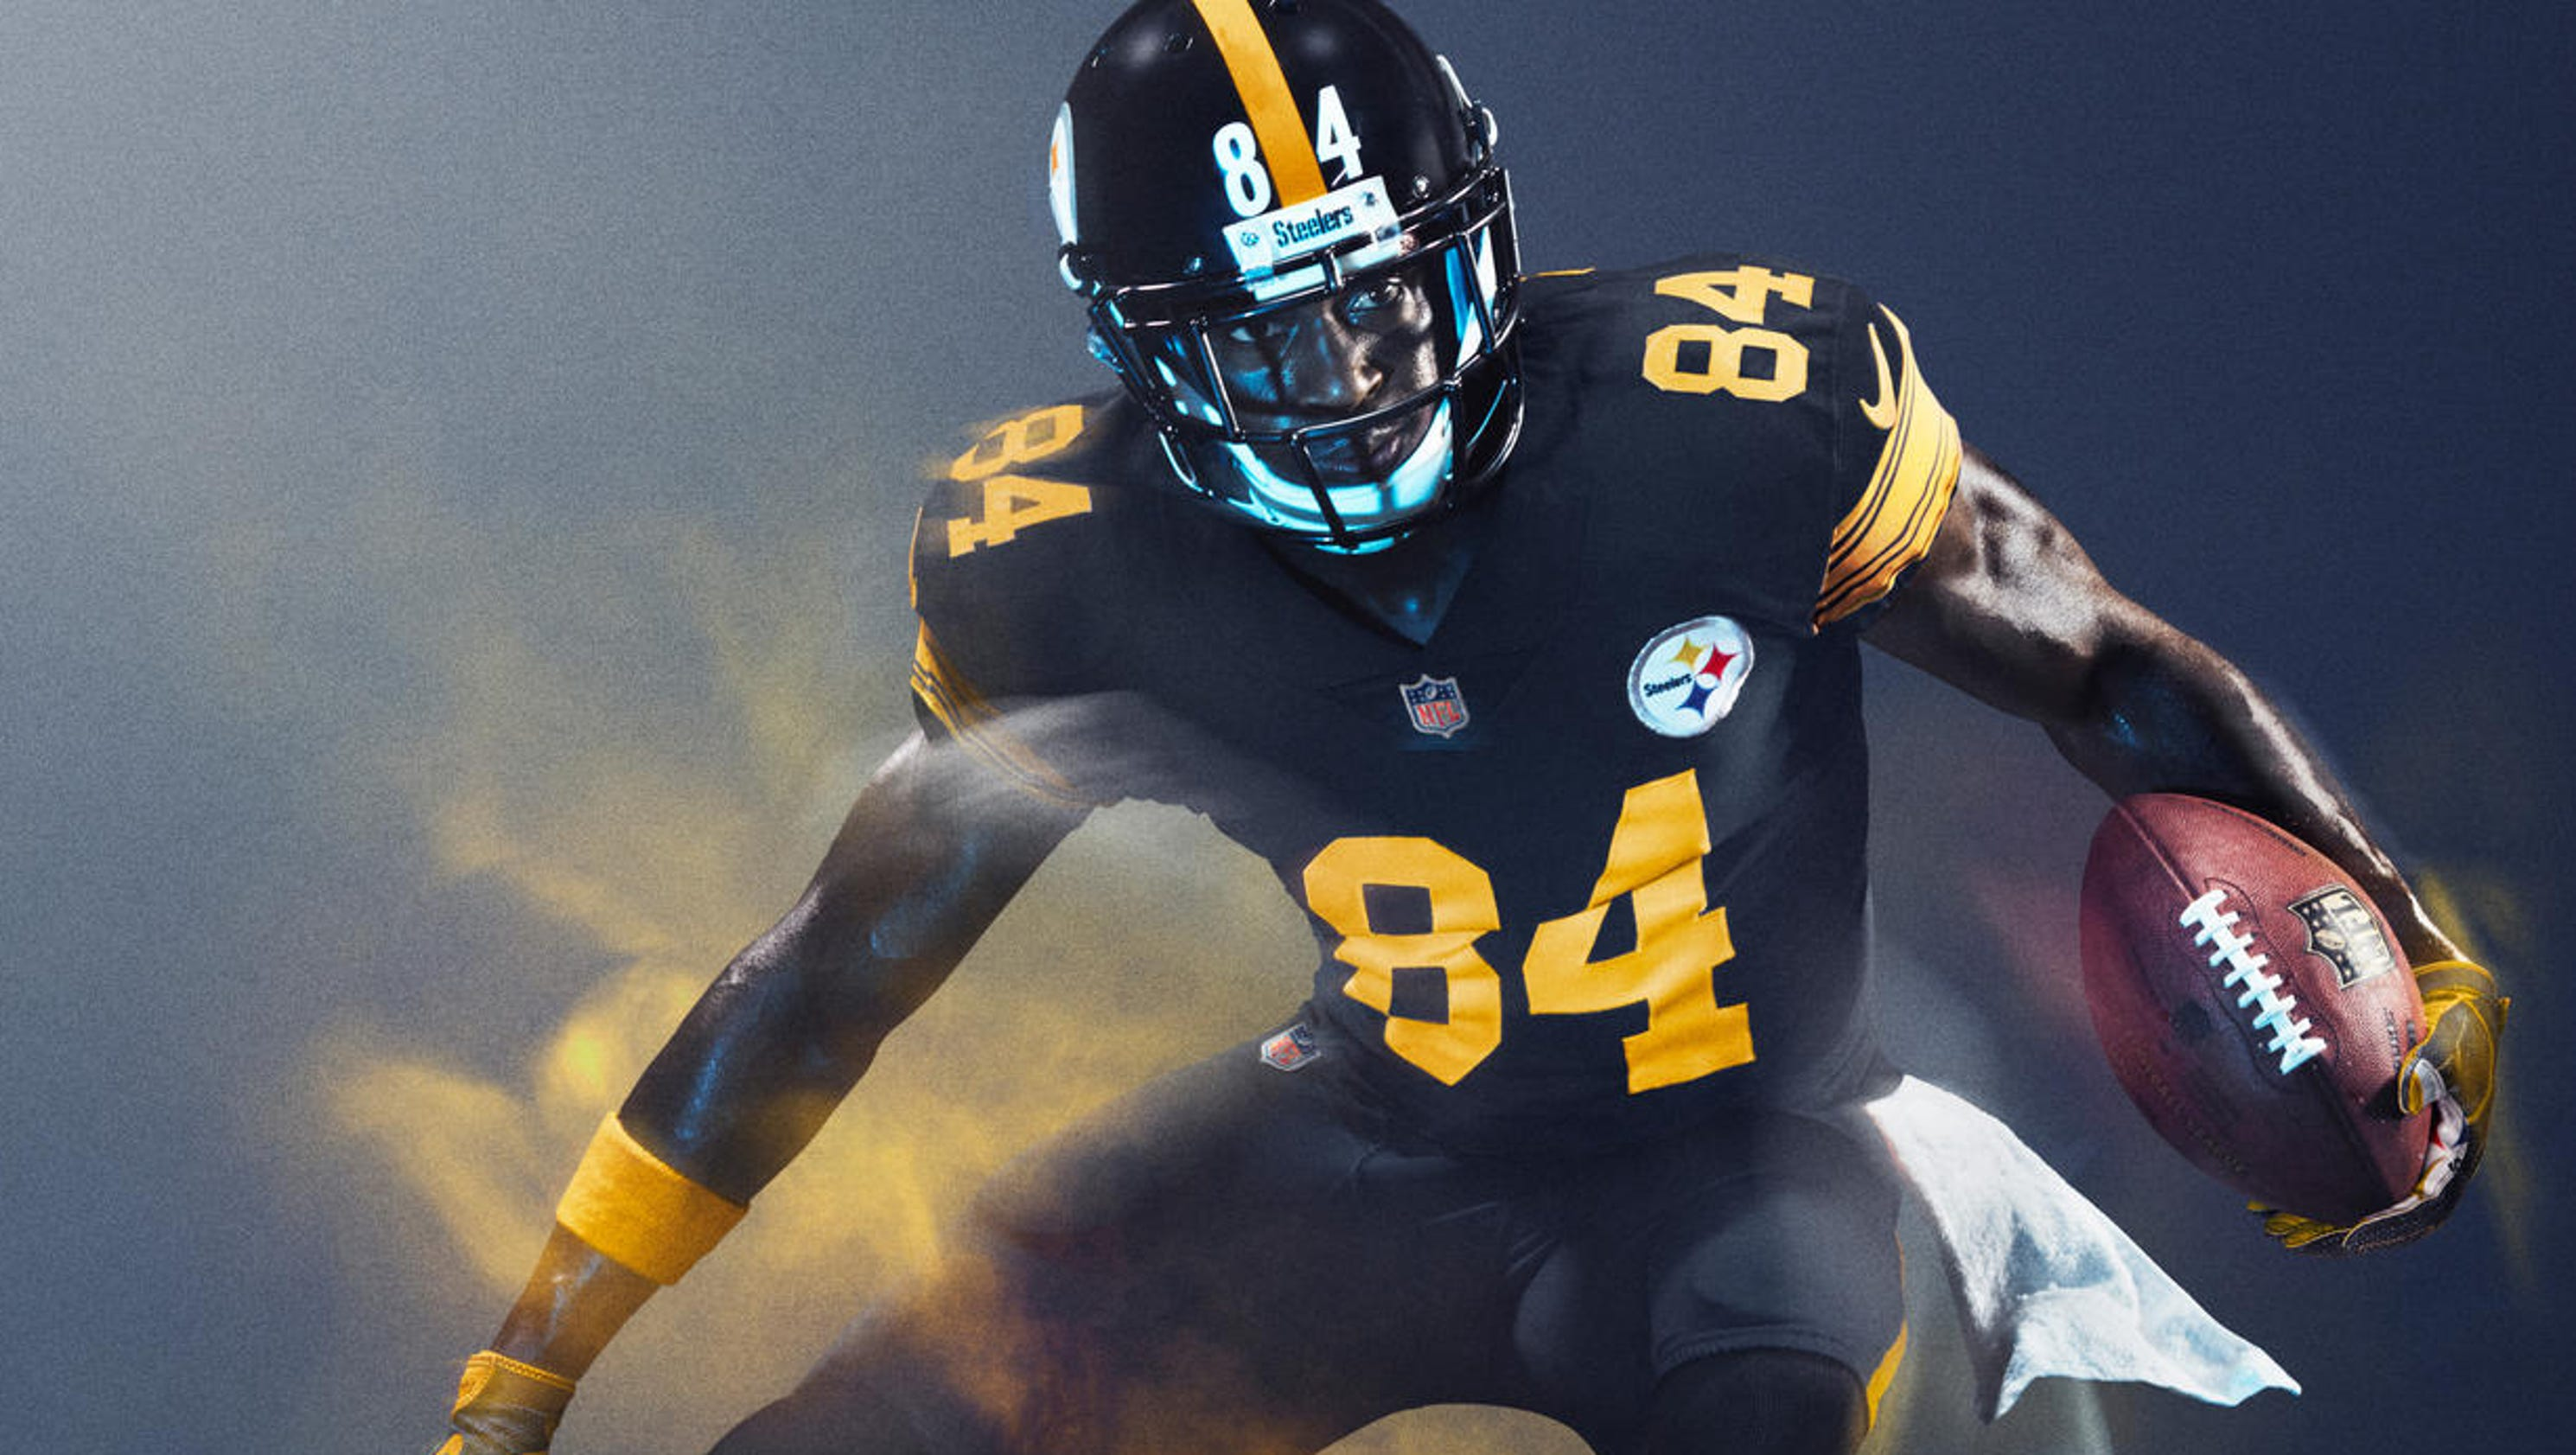 58c238a0600 nike color rush uniforms take center stage on thursday night football